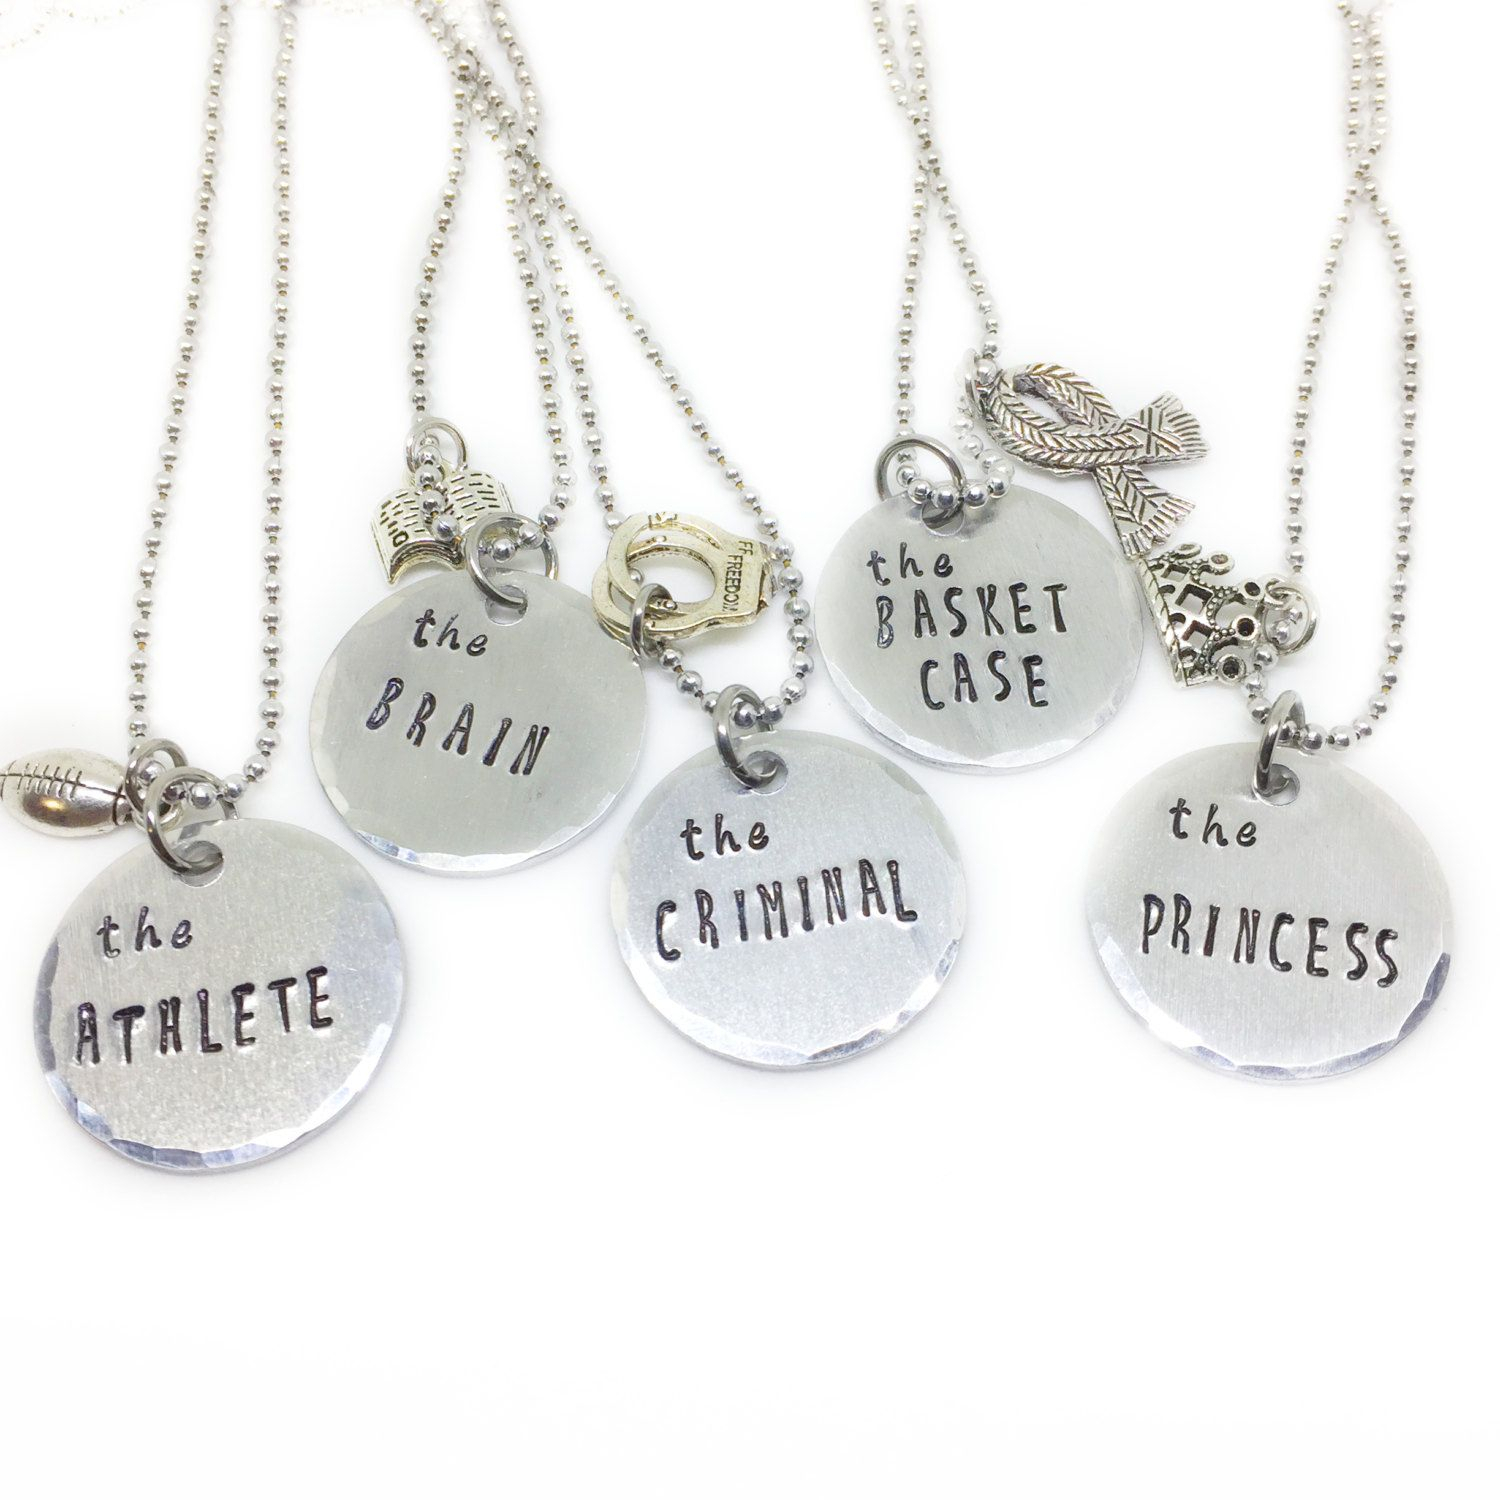 Breakfast Club Best Friend Necklaces | Nerd Of All Trades In 2019 With Most Popular Sparkling Gift Locket Element Necklaces (View 11 of 25)